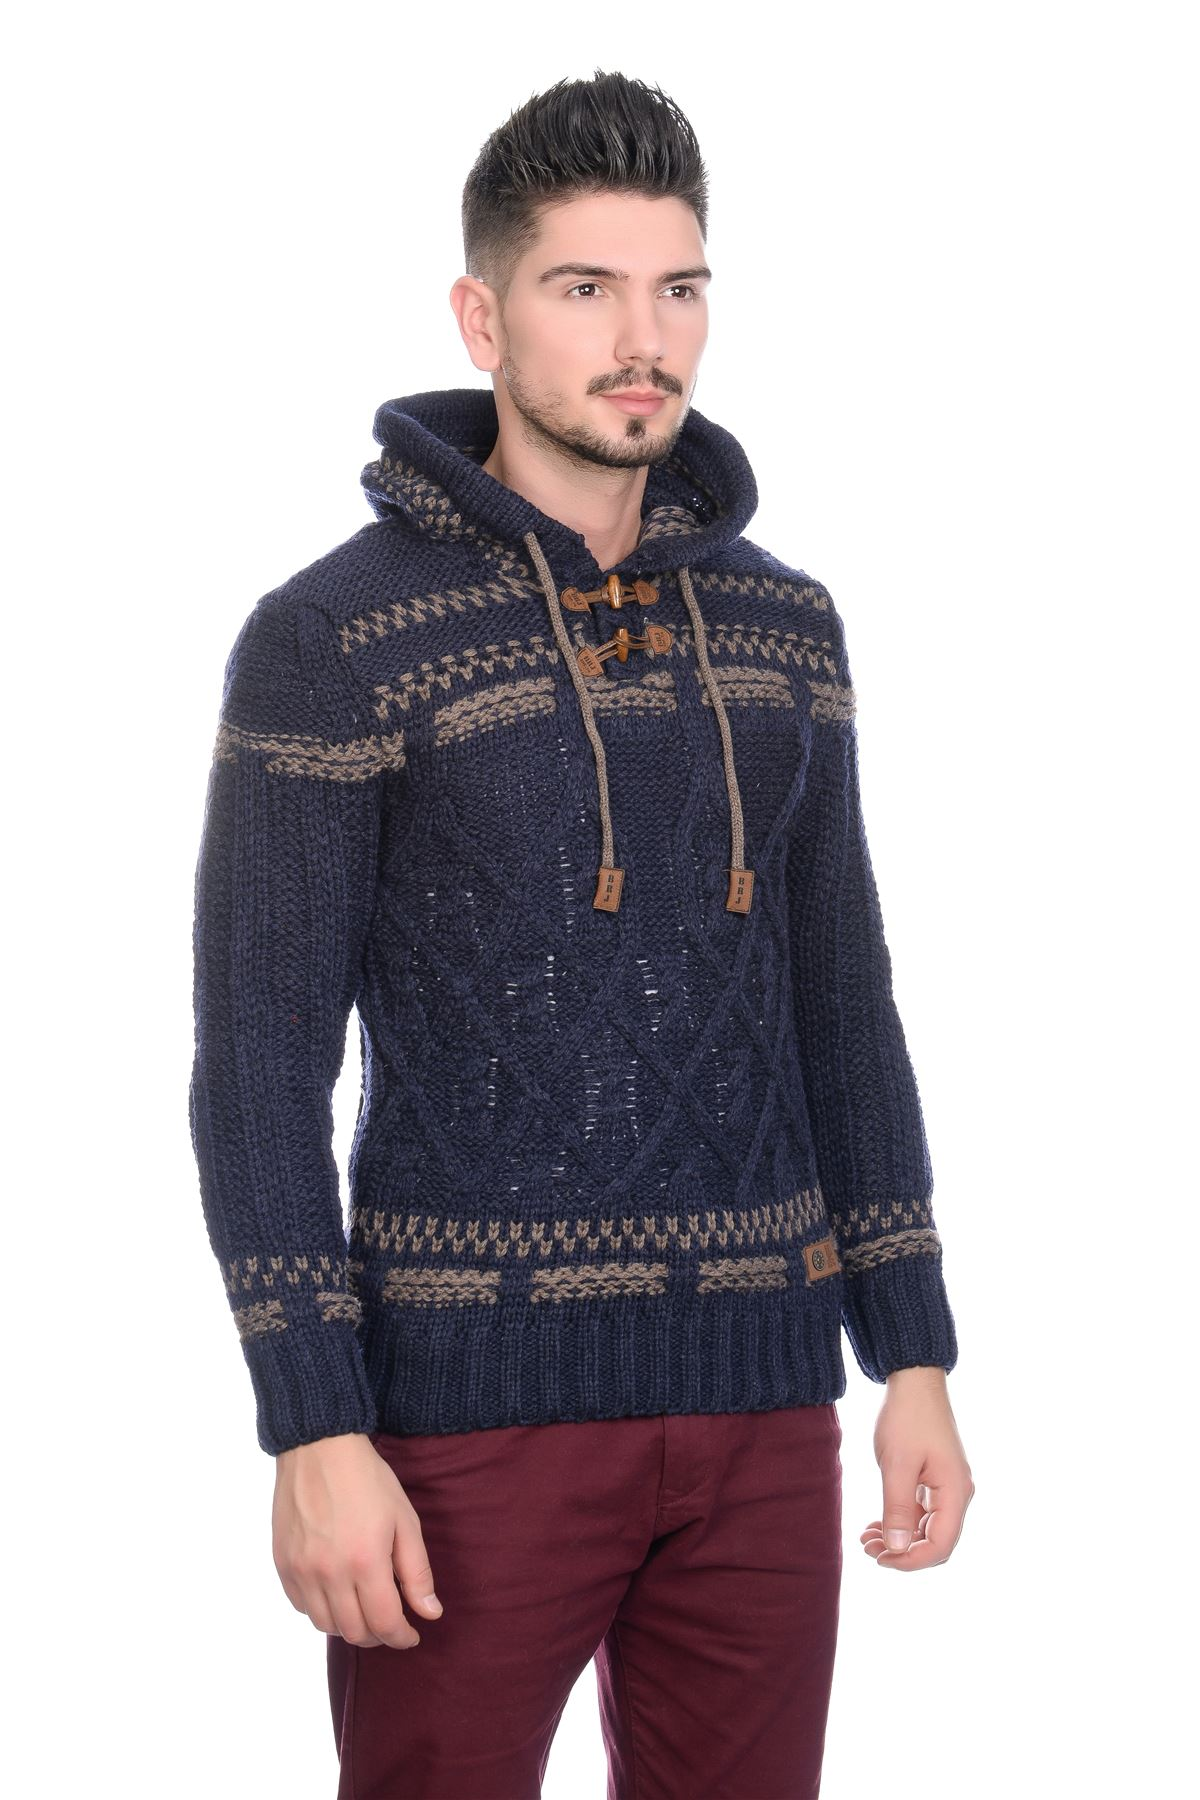 Men's Cable Knit Sweaters. invalid category id. Men's Cable Knit Sweaters. Showing 40 of results that match your query. Product - Boston Traders Mens Marled French Terry Sweater Size Medium. Product Image. Price $ Product Title. Boston Traders Mens Marled French Terry Sweater Size Medium. Add To Cart.